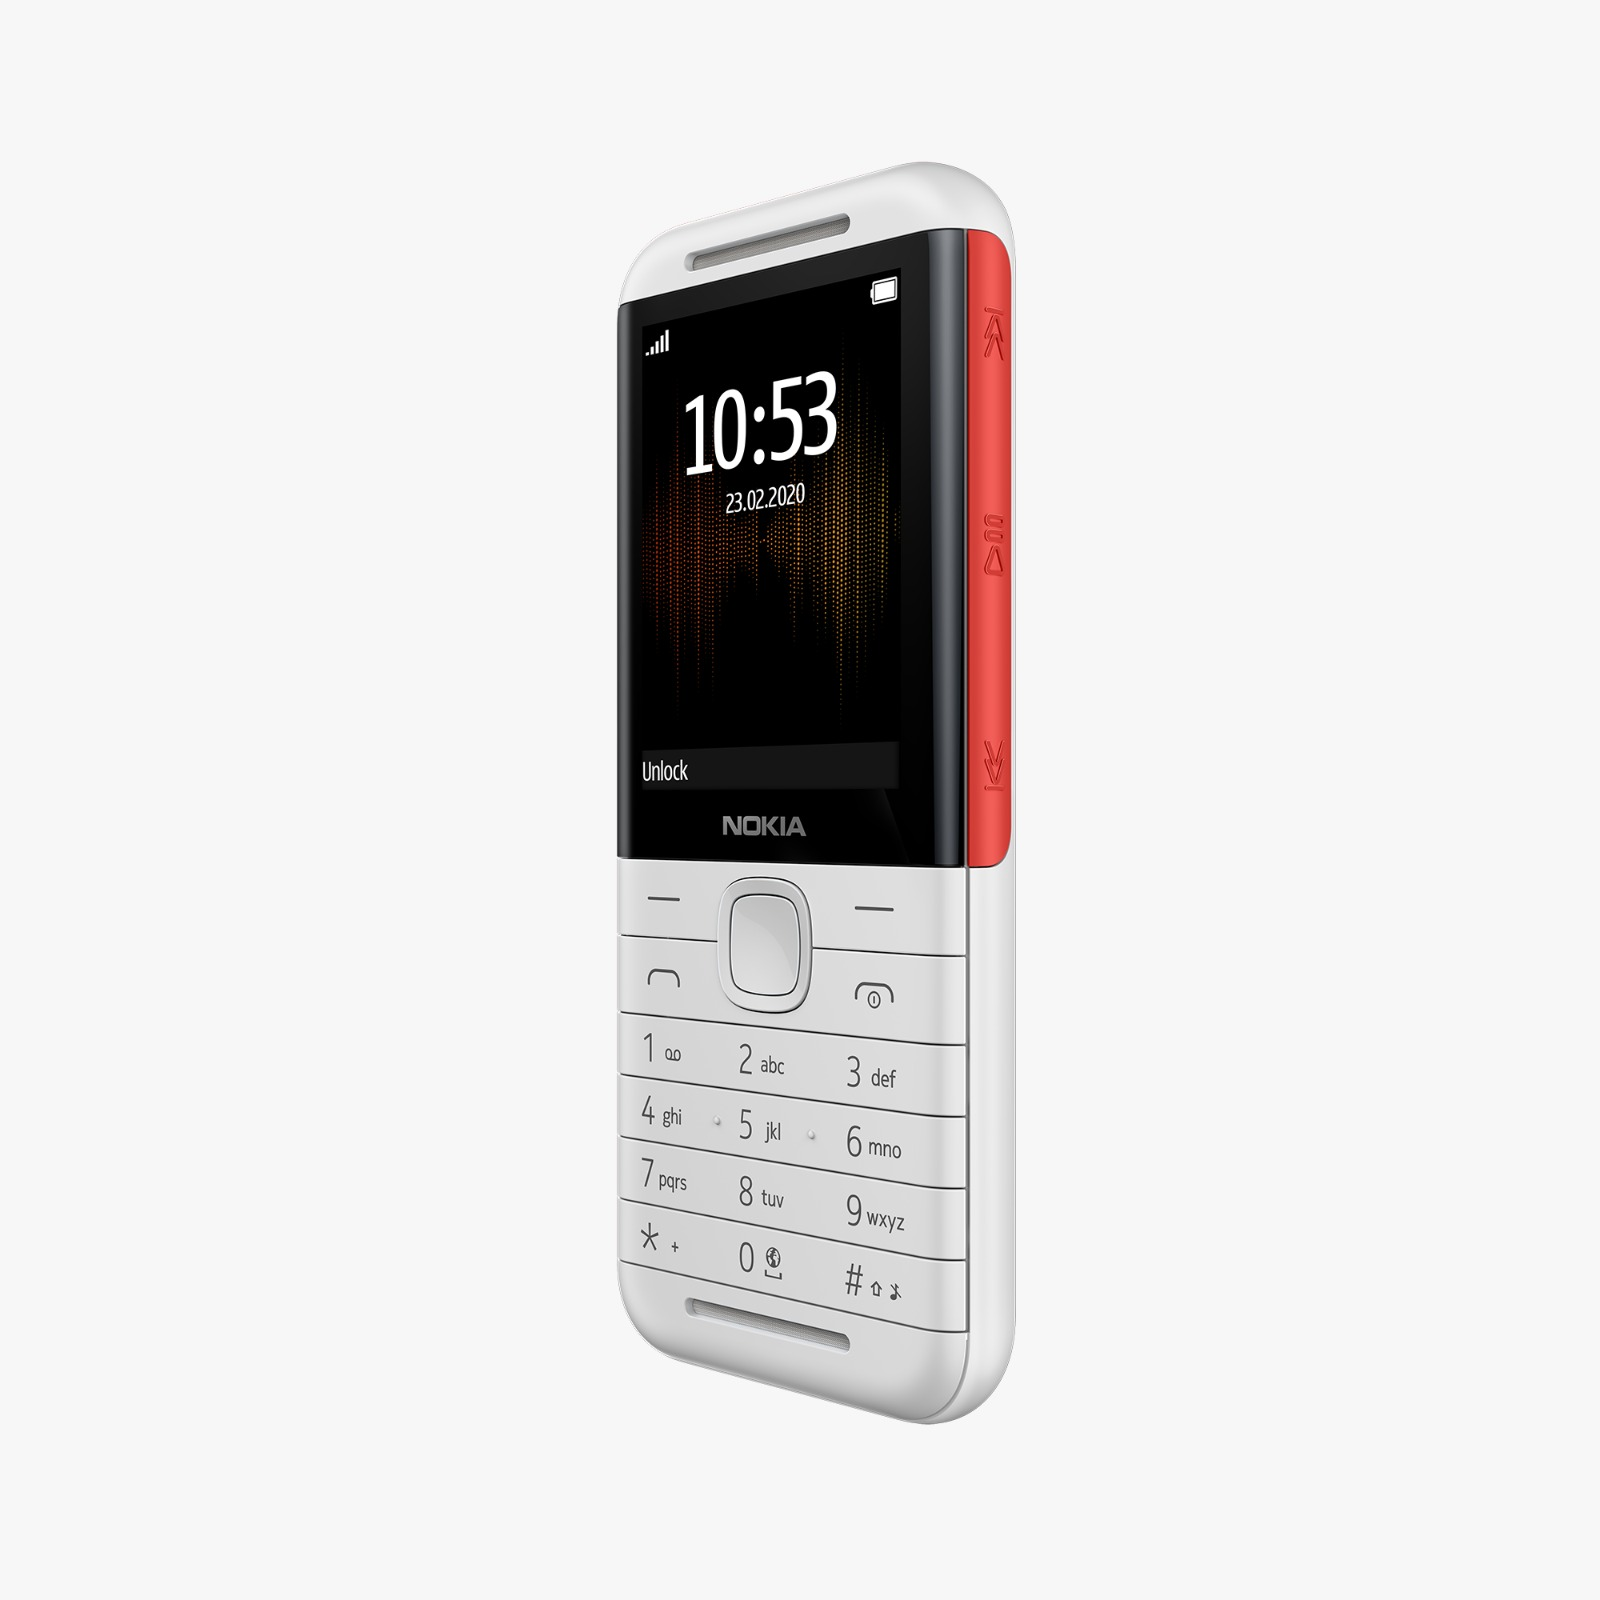 Video: Test of Nokia 5310 speakers and equalizer | Nokiamob